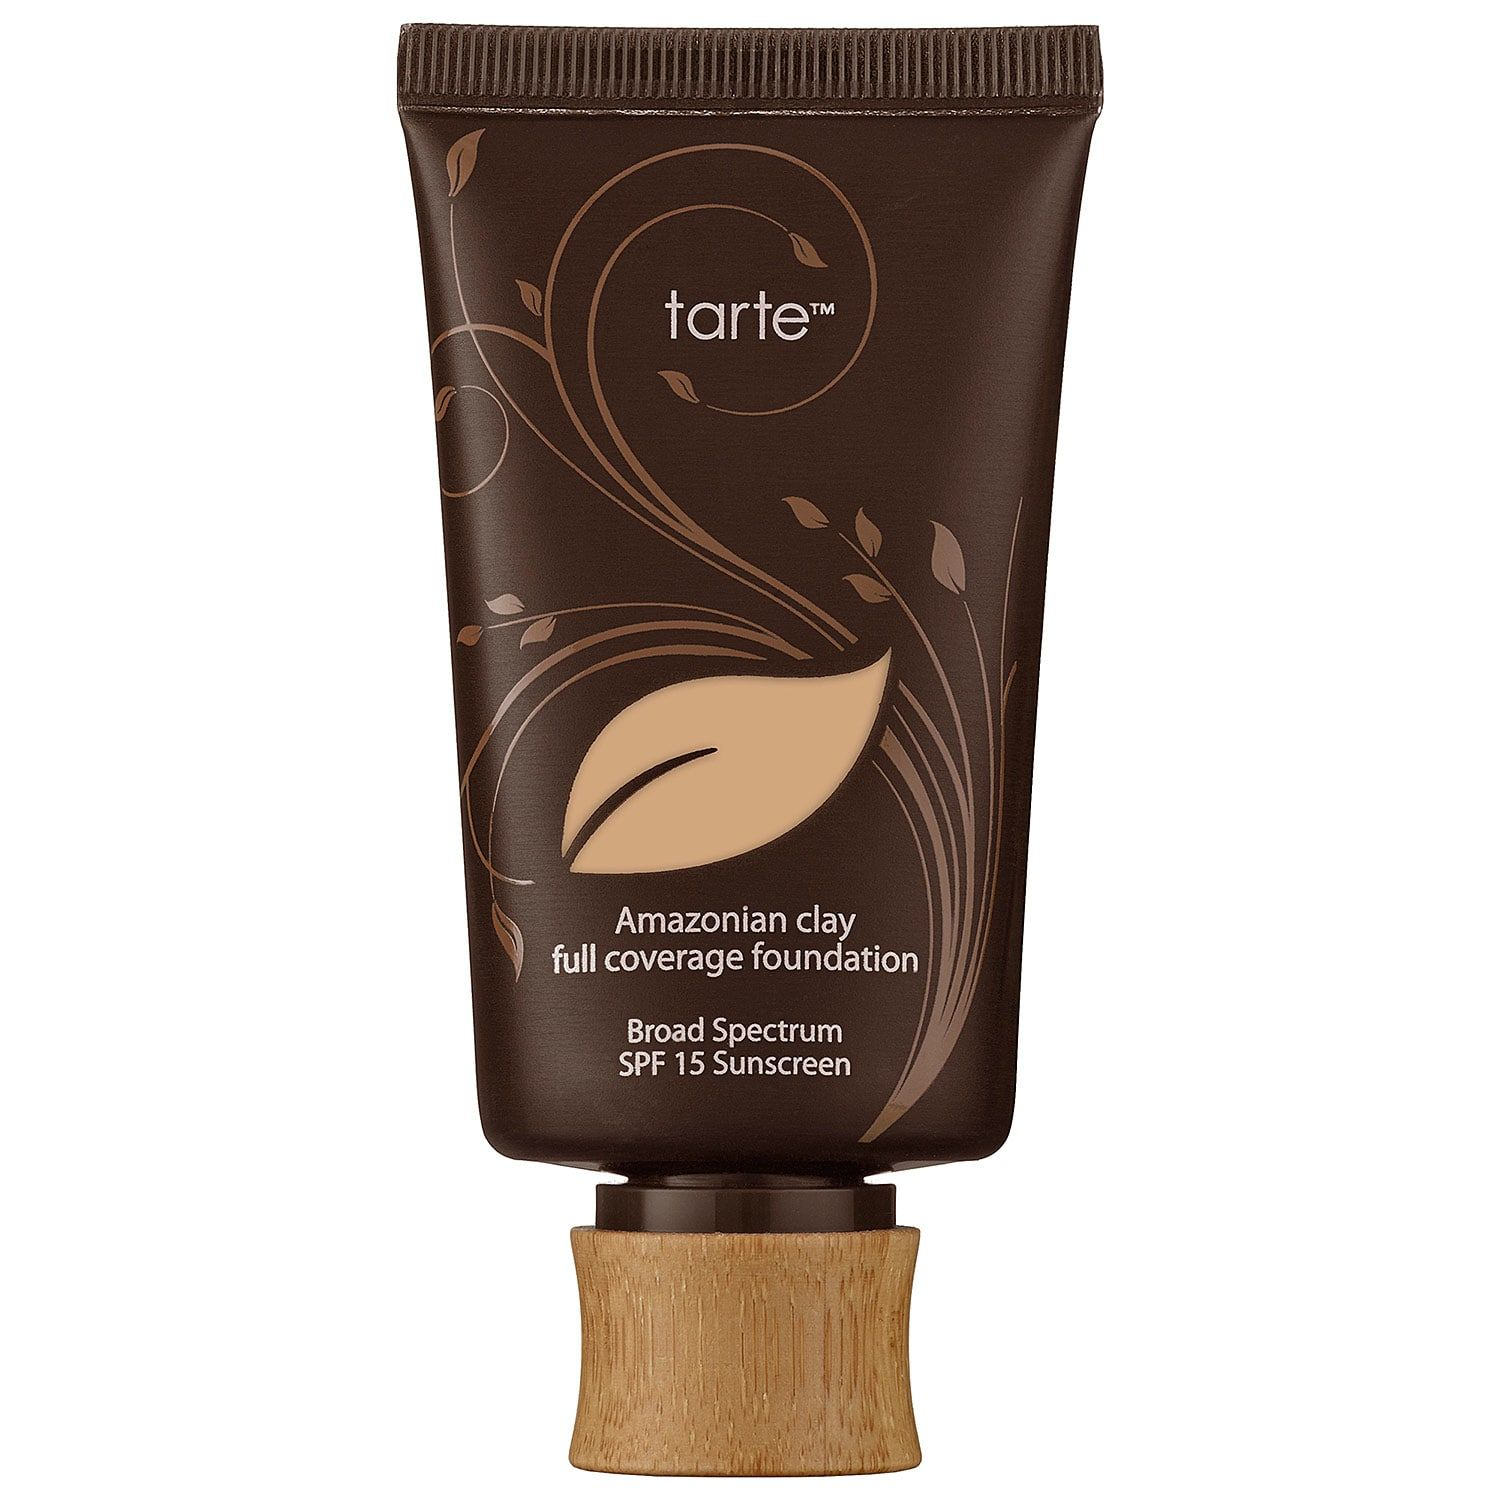 For Vegans Amazonian Clay Full Coverage Foundation SPF 15 Tarte $39.00 SHOP NOW Amazonian clay is what your matte makeup dreams are made of. The formula provides full coverage without the heaviness and allows your skin to breathe.